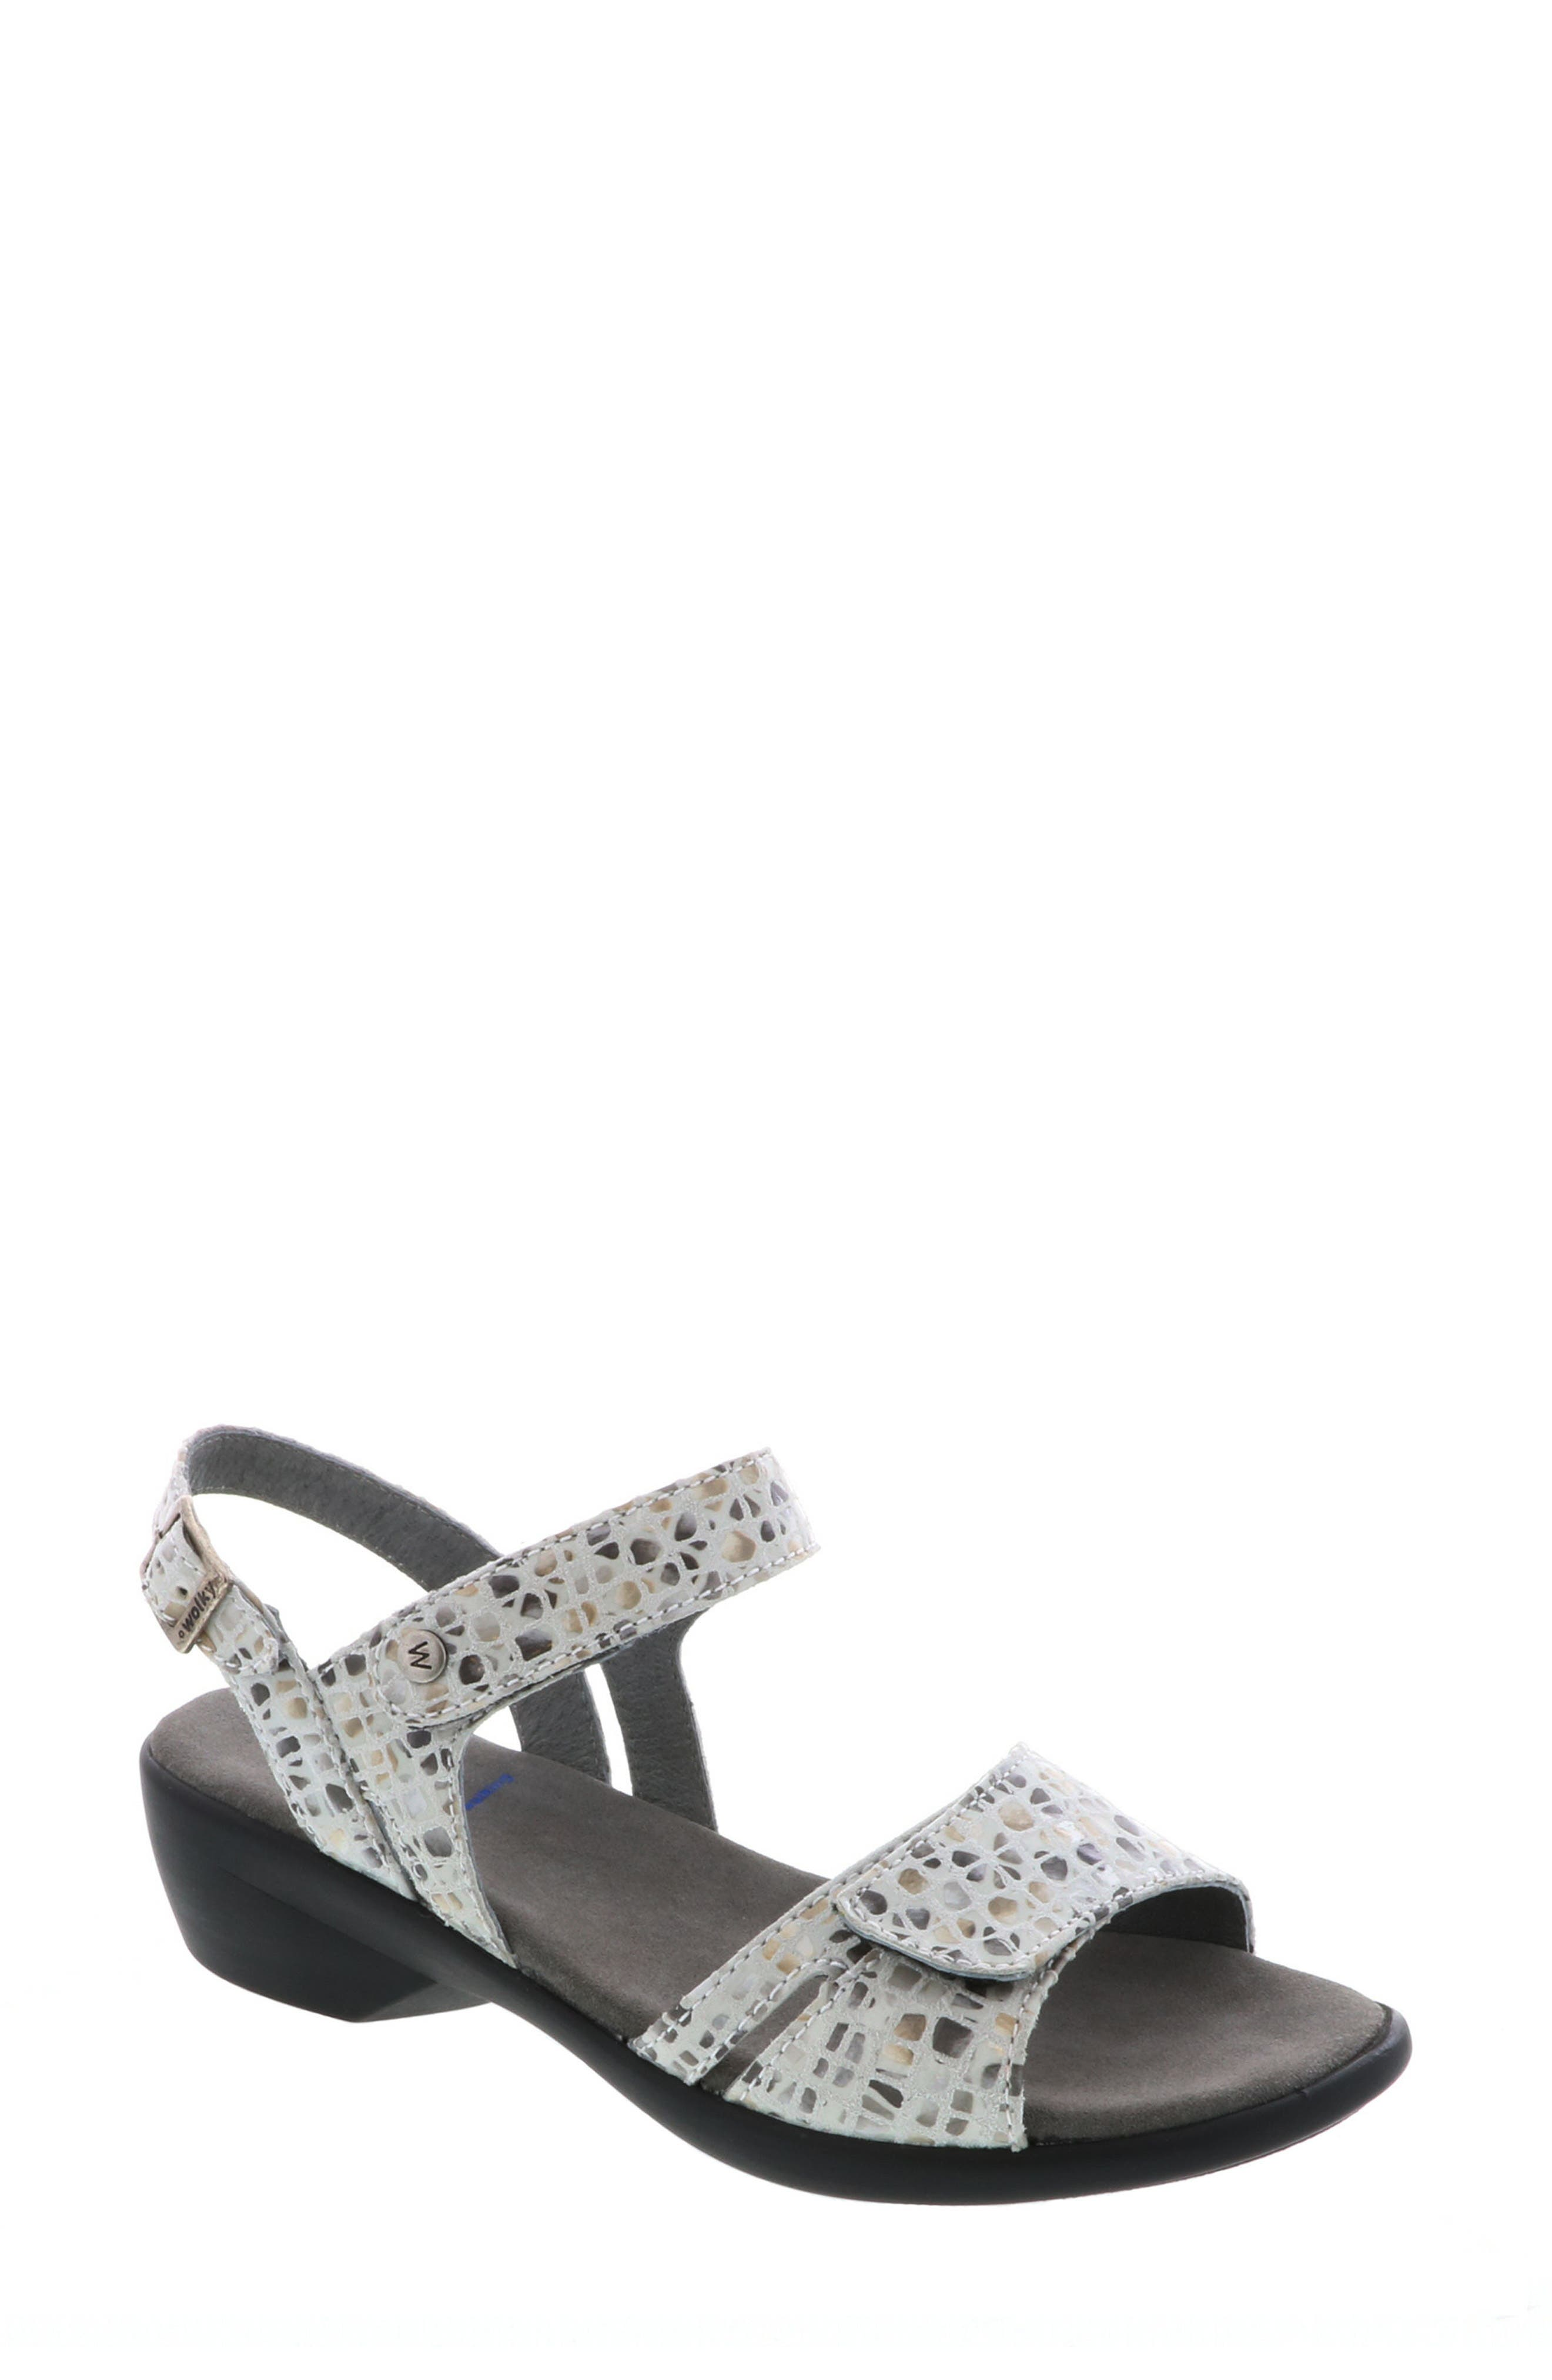 Agua Sandal,                         Main,                         color, OFF WHITE/ GREY